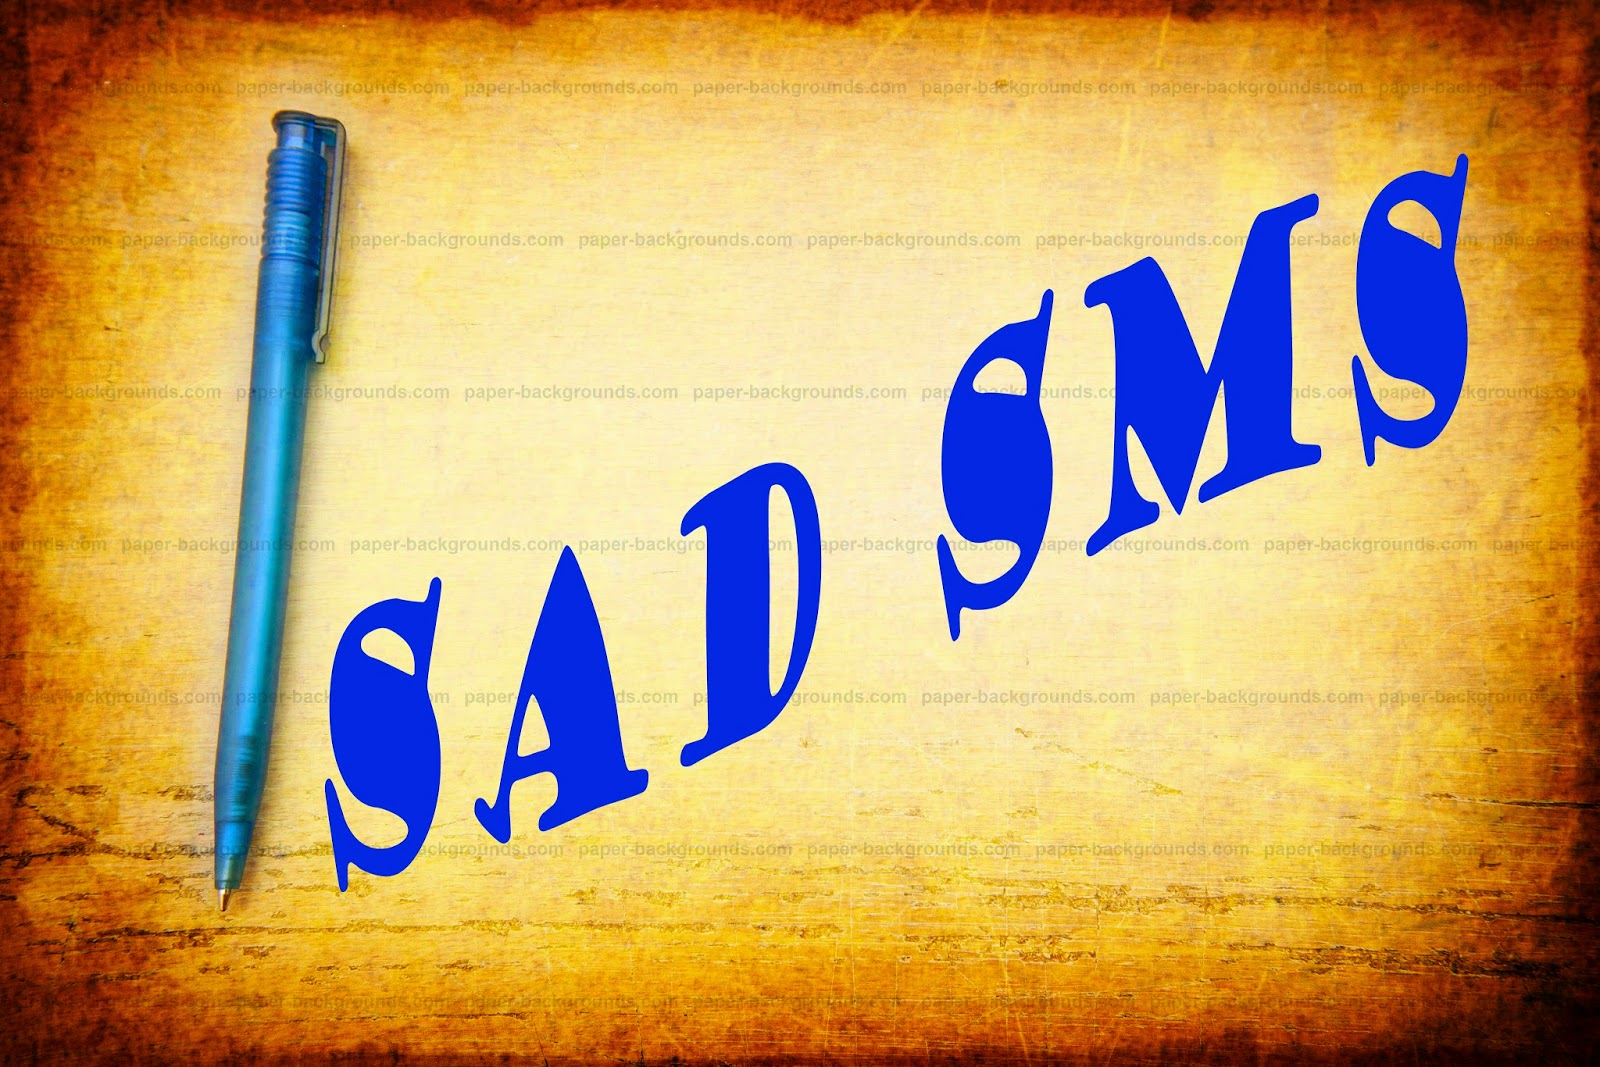 Sad sms download in mobile